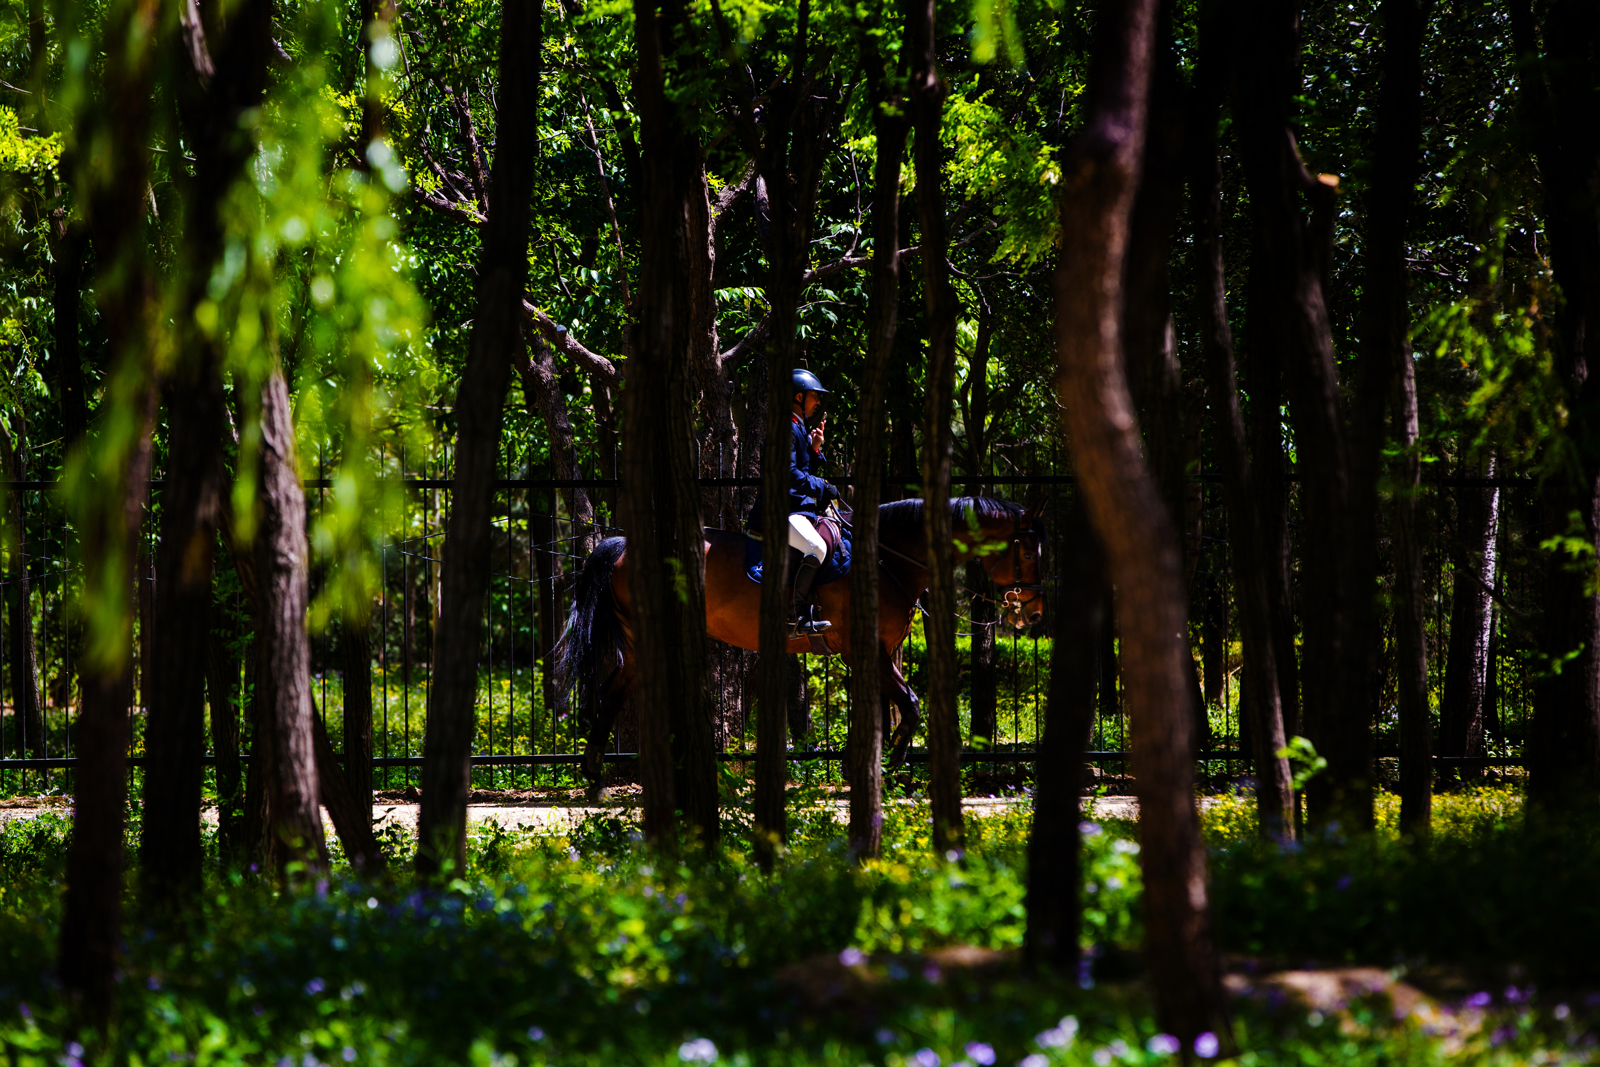 A rider and his a horse during the Longines FEI World Cup Jumping - China League at Chaoyang Park on May 3, 2016 in Beijing, China. (FEI/Yong Teck Lim)